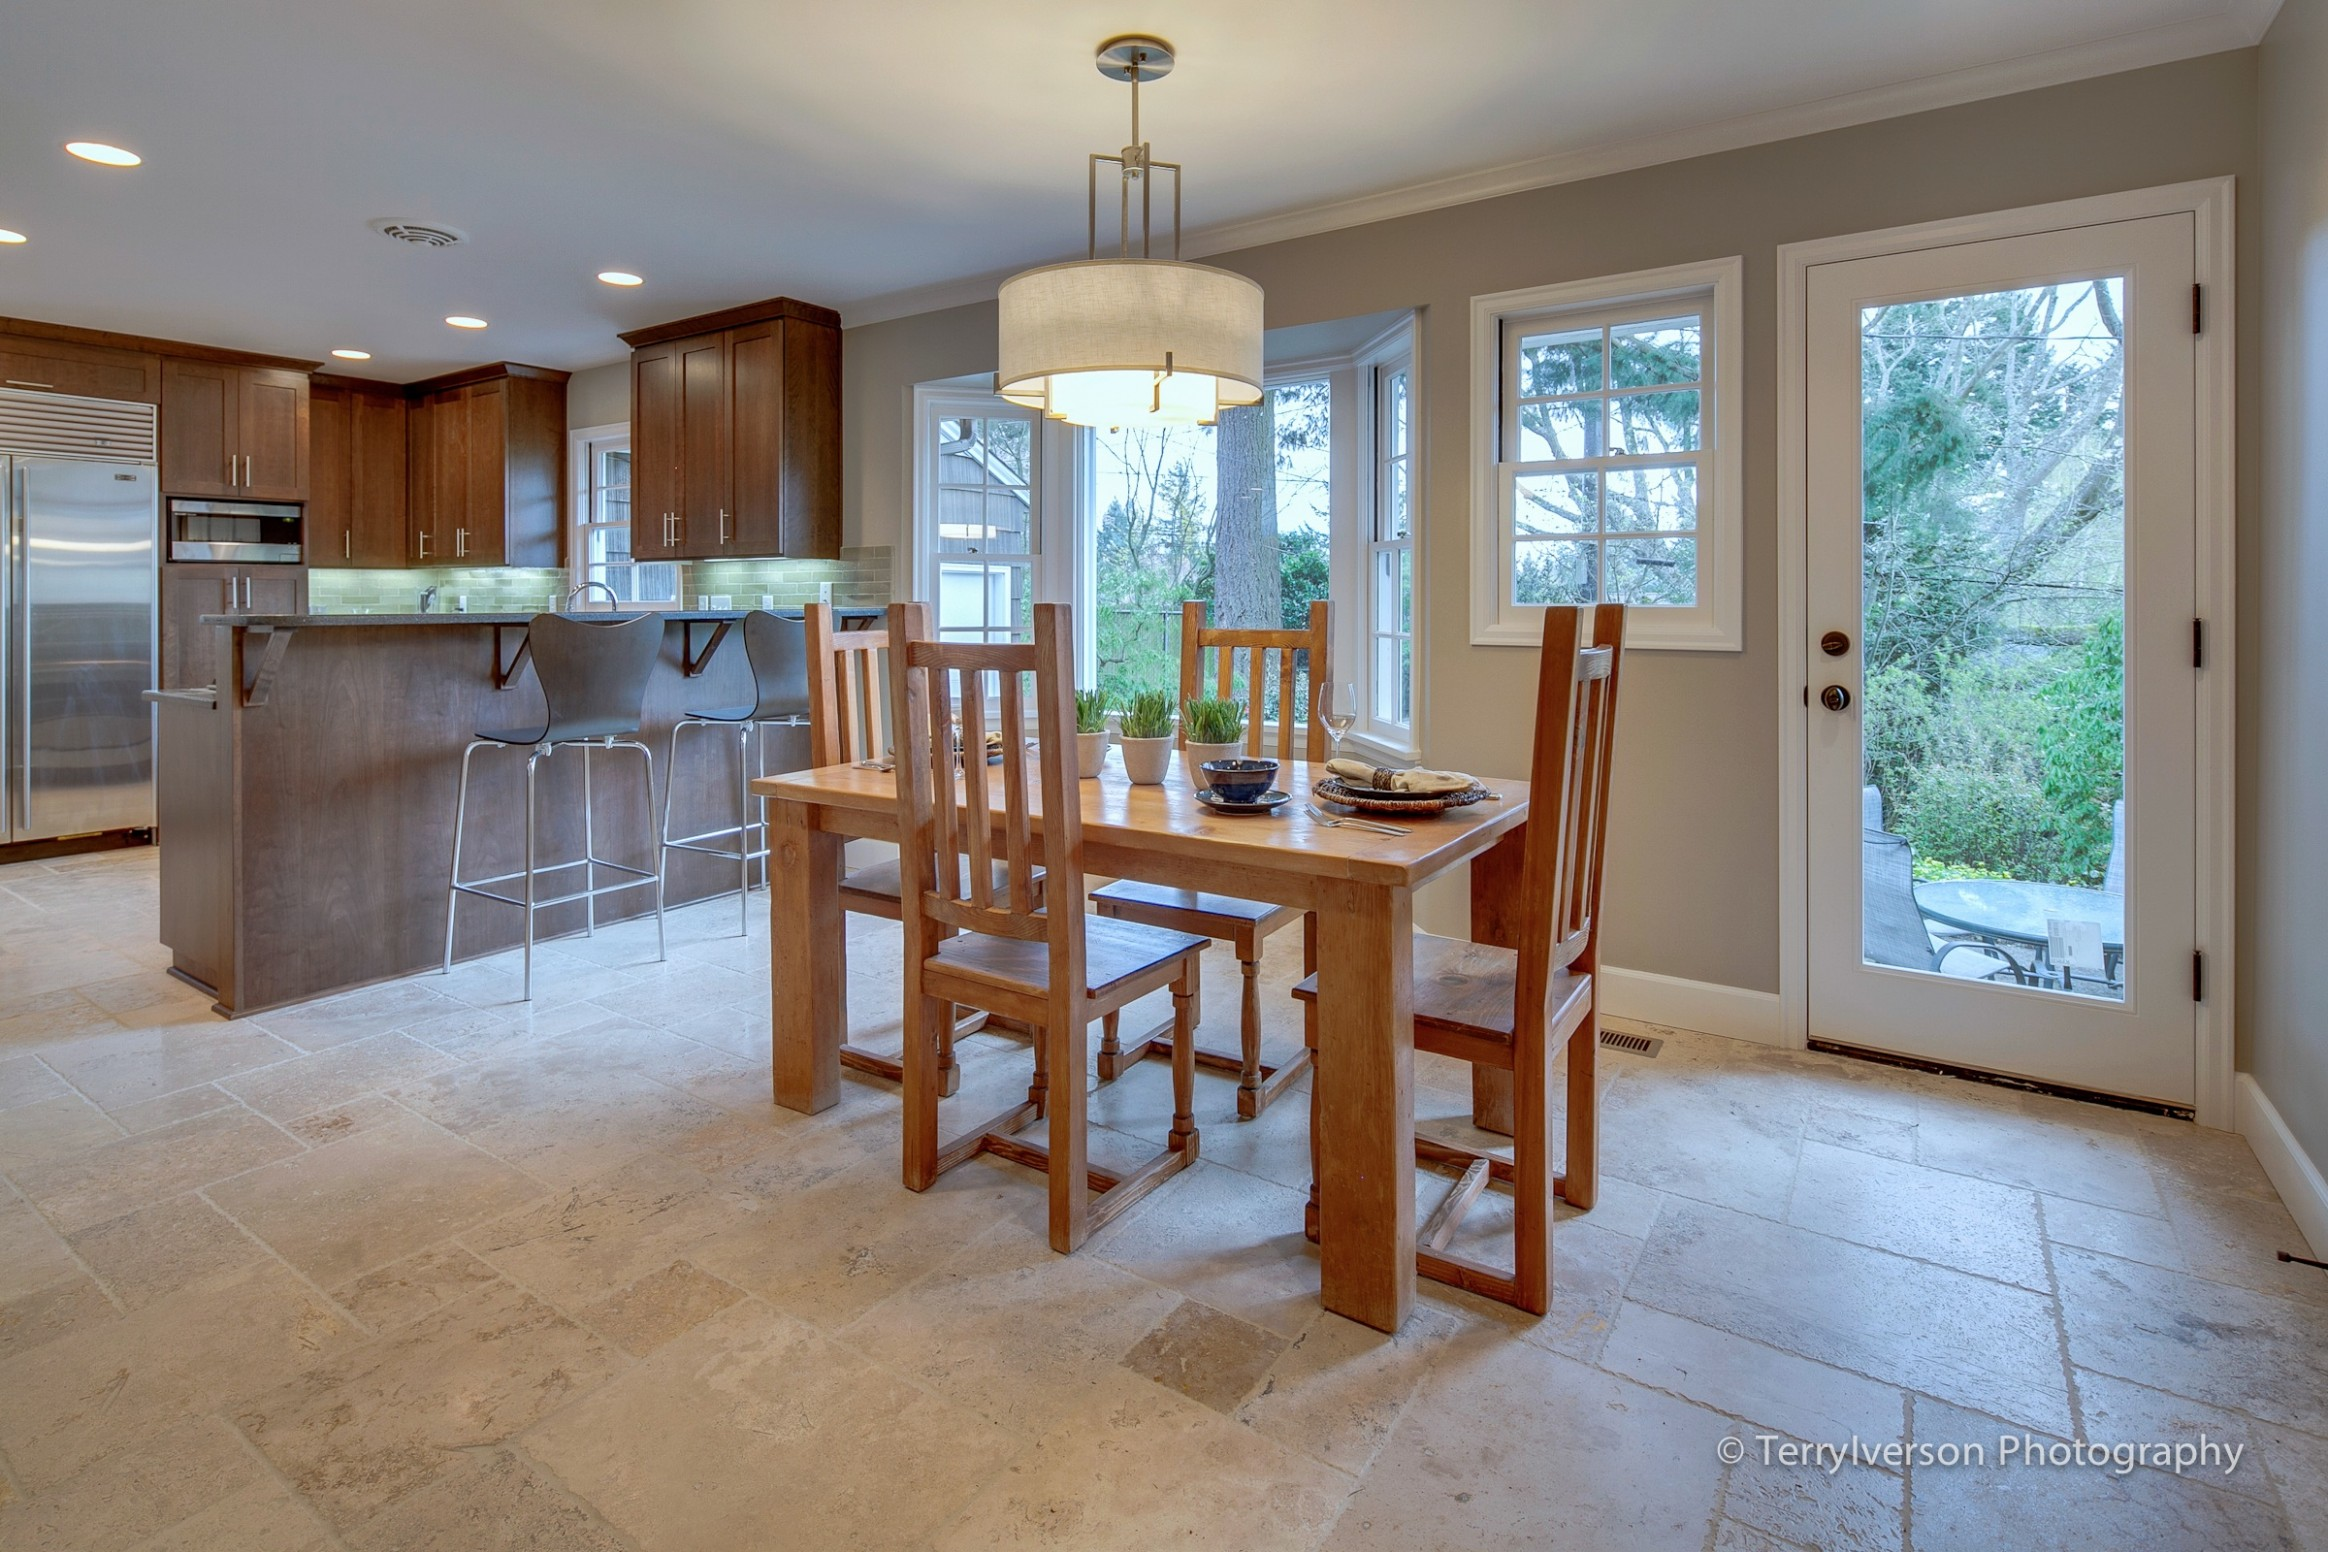 Tile in dining room - large and beautiful photos